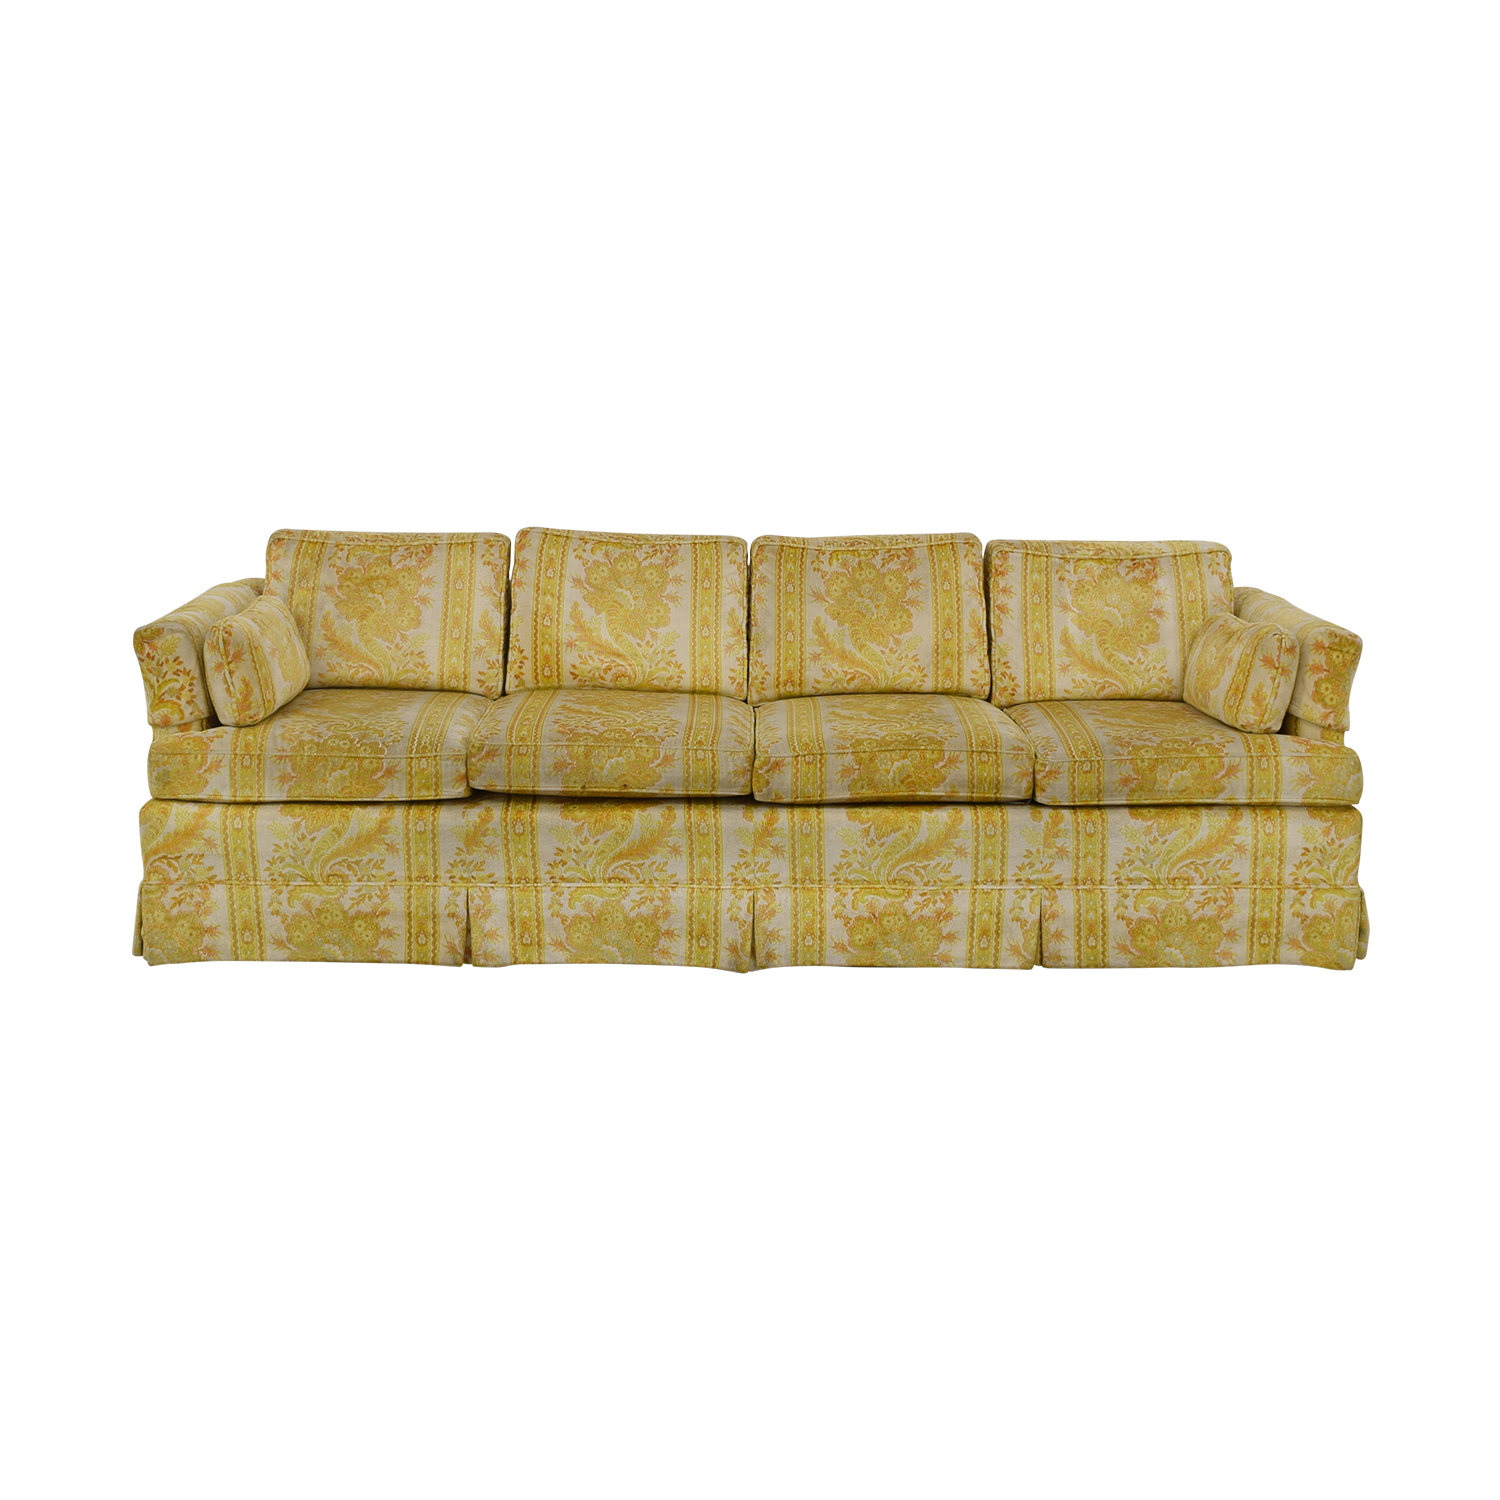 Thomasville Thomasville Patterned Sofa Sofas